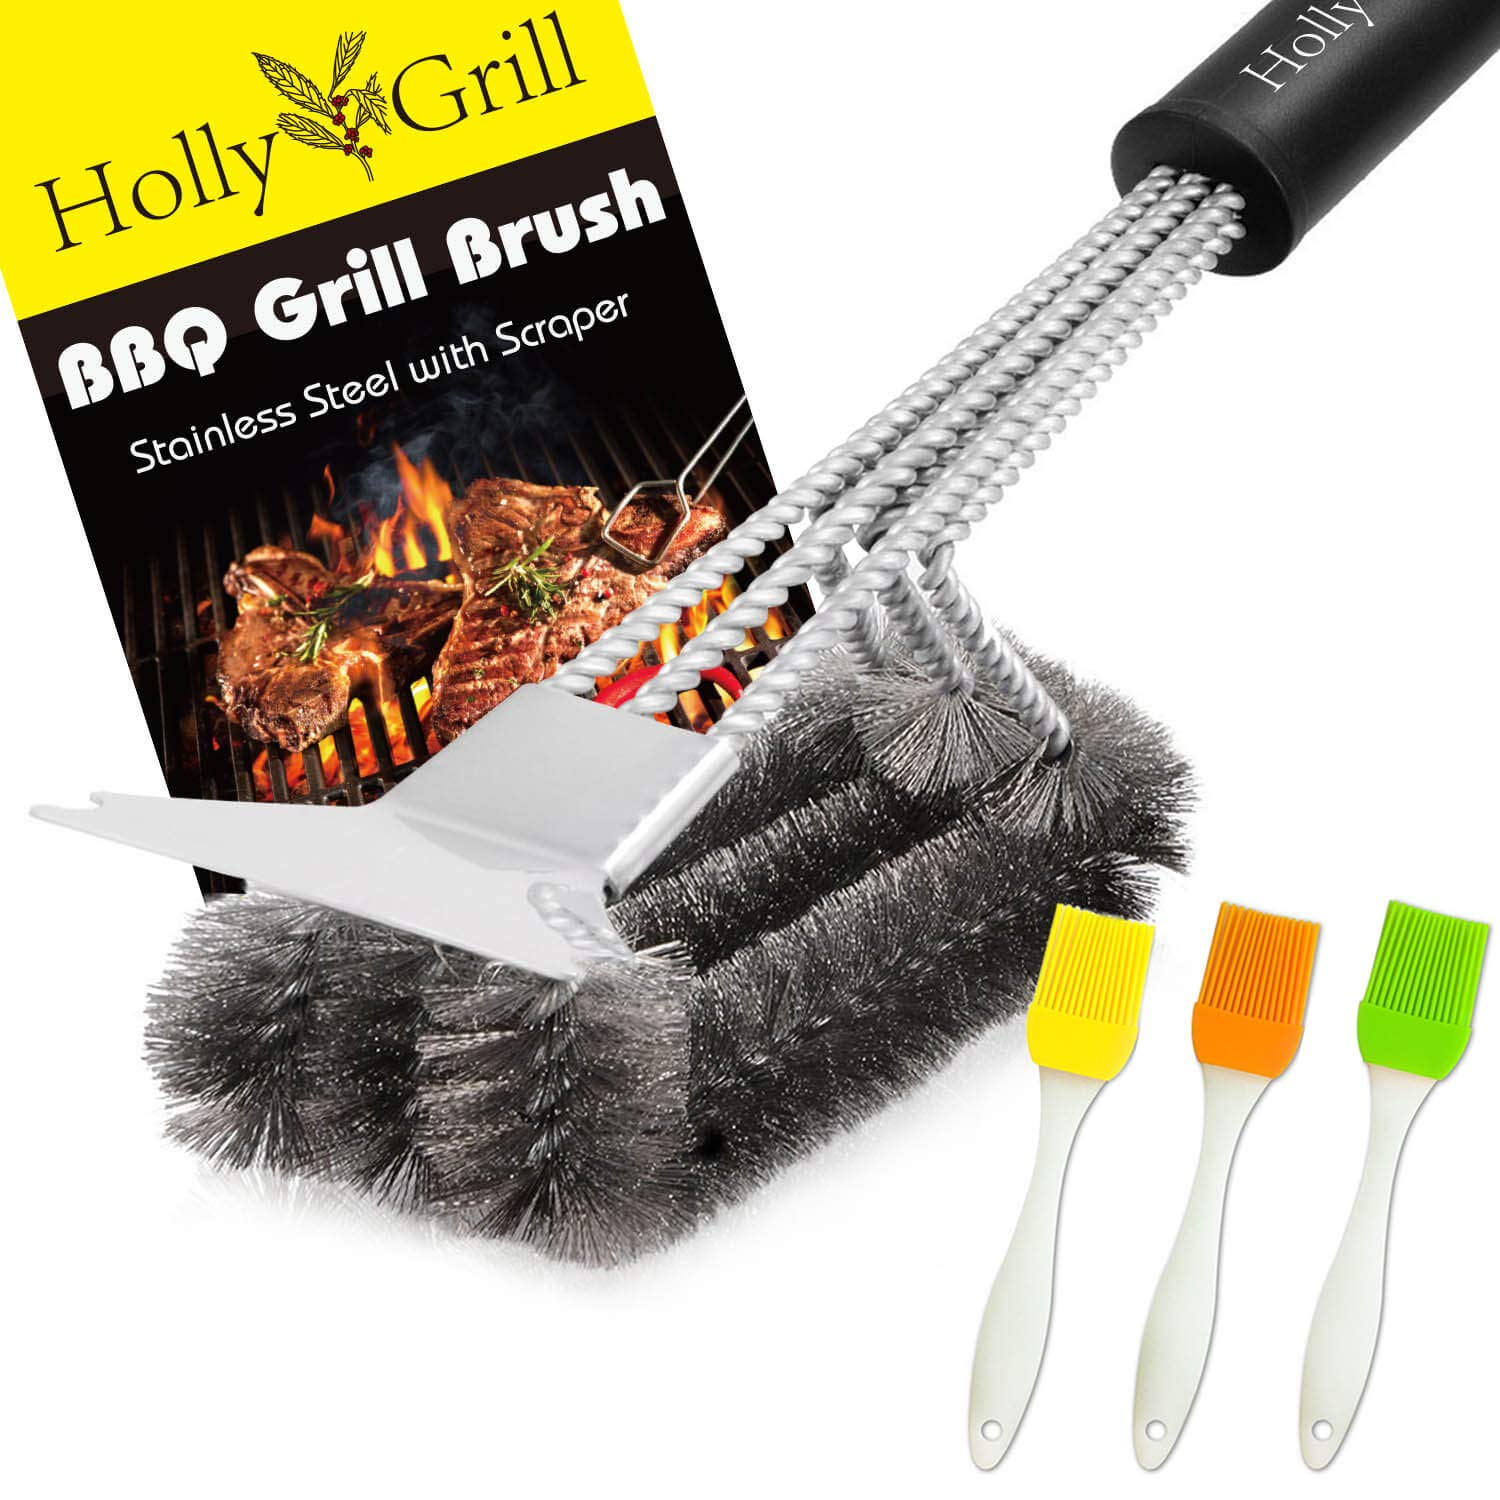 HollyGrill Safe Grill Brush and Scraper | Heavy Duty 18'' BBQ Brush with Stiff Bristles | No Pieces Come Off | 100% Rust Resistant Stainless Steel Barbecue Brush | Great Weber Grill Accessories Gift by HollyGrill